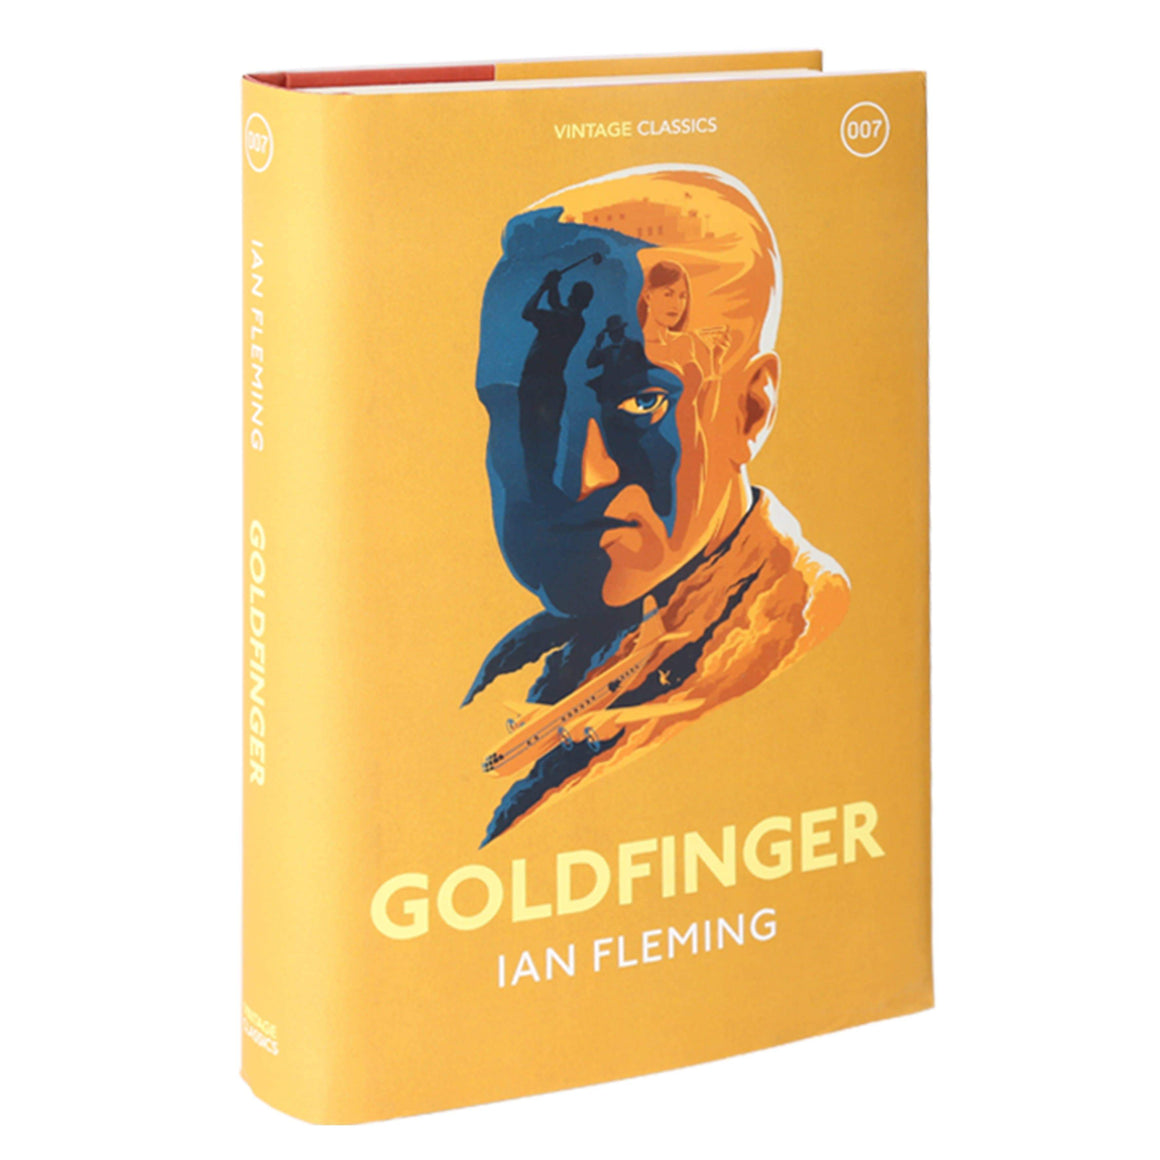 Goldfinger: Vintage Classics Hardback Book - By Ian Fleming - 007STORE